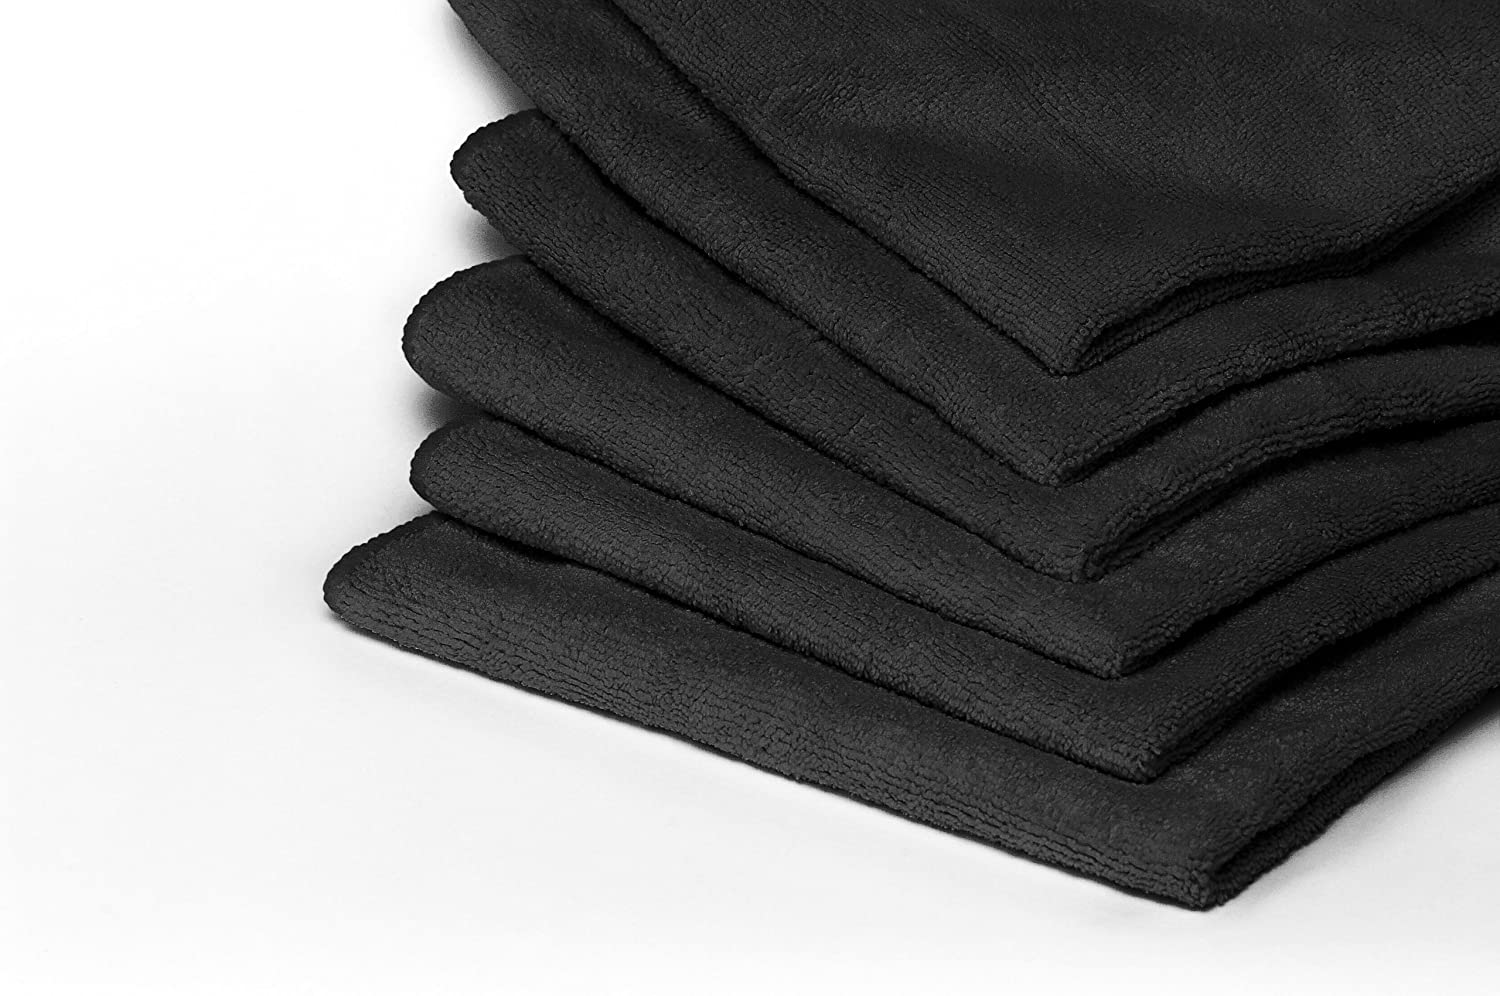 Heininger 5403 GarageMate Black Microfiber Towel, (Pack of 40)